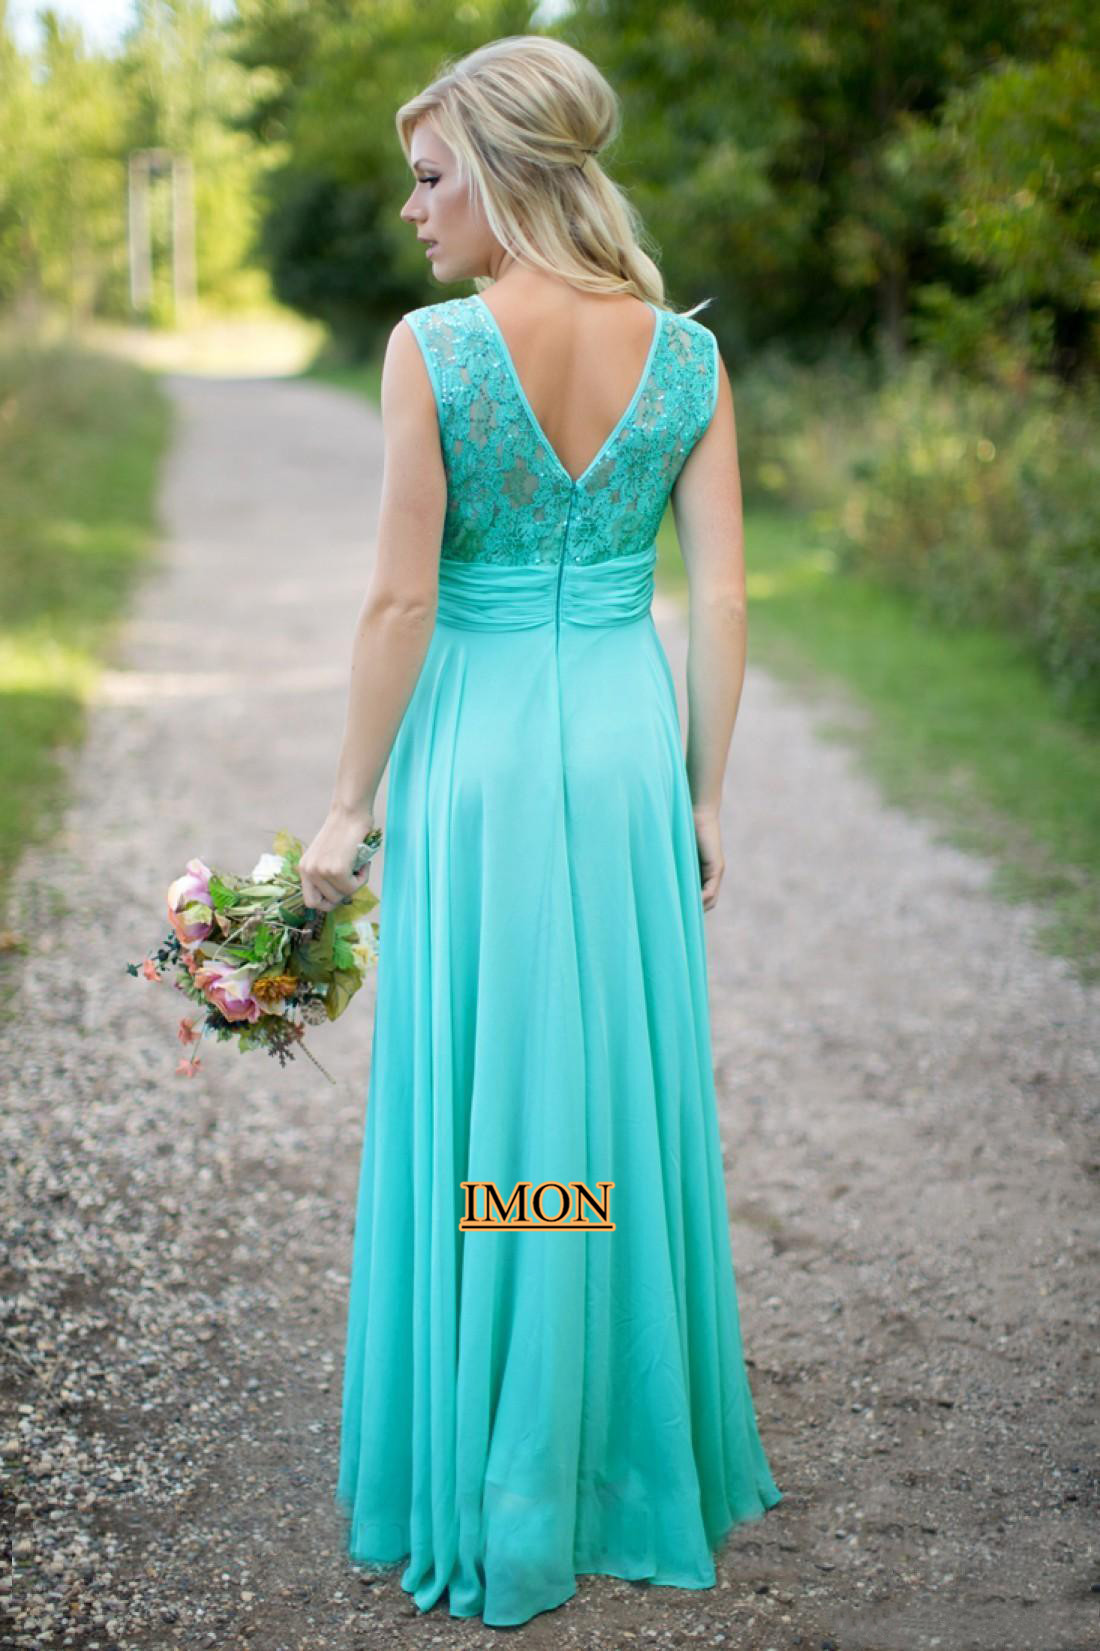 Scoop Turquoise Lace Bridesmaid Dresses 2019 Elegant Sleeveless Backless Floor Length Chiffon Formal Party Dress For Wedding